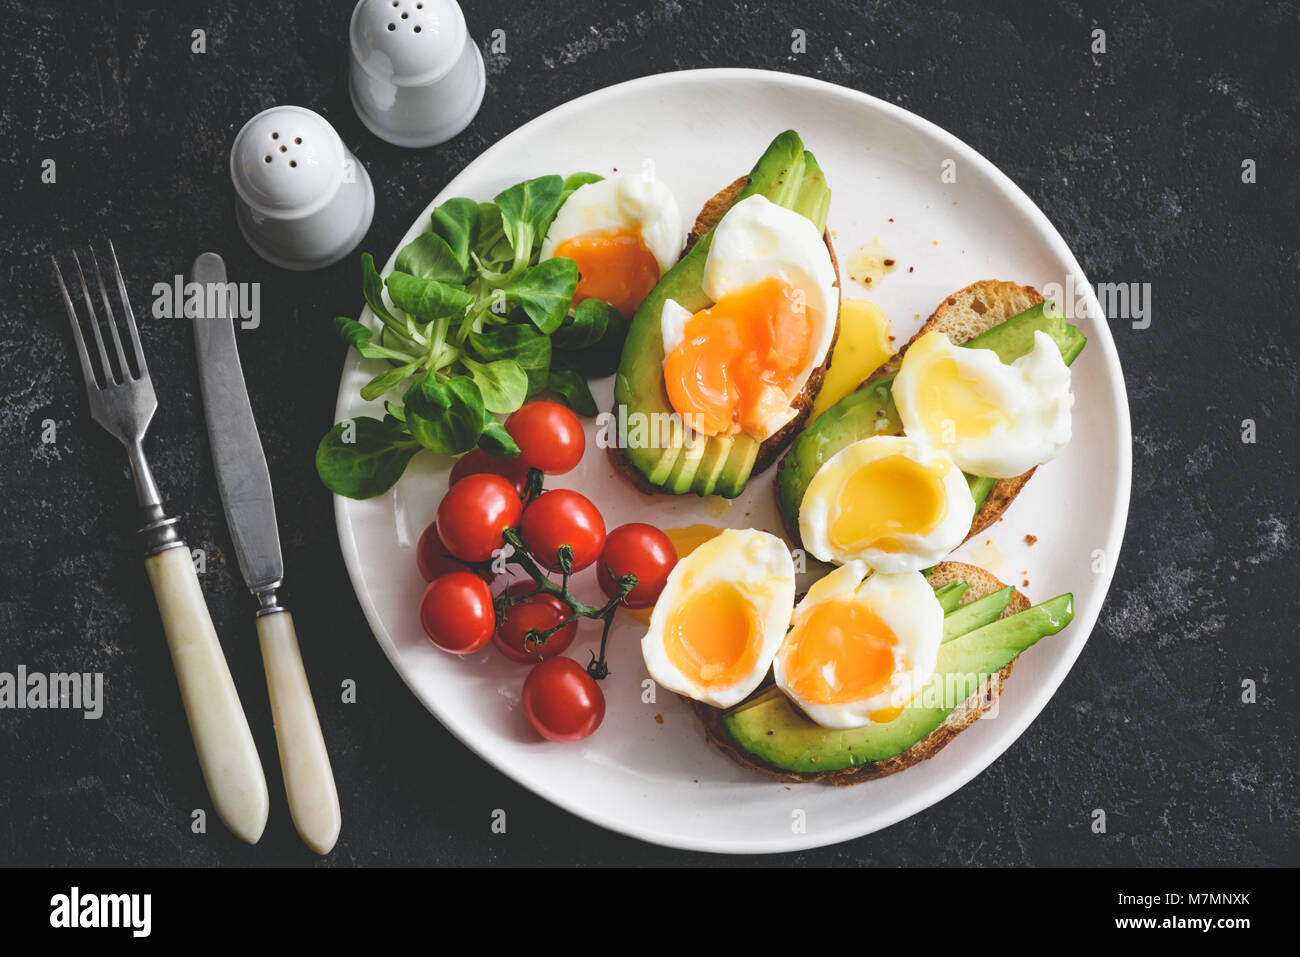 Poached egg and avocado toasts on white plate, top view, toned image. Healthy breakfast or lunch - Stock Image